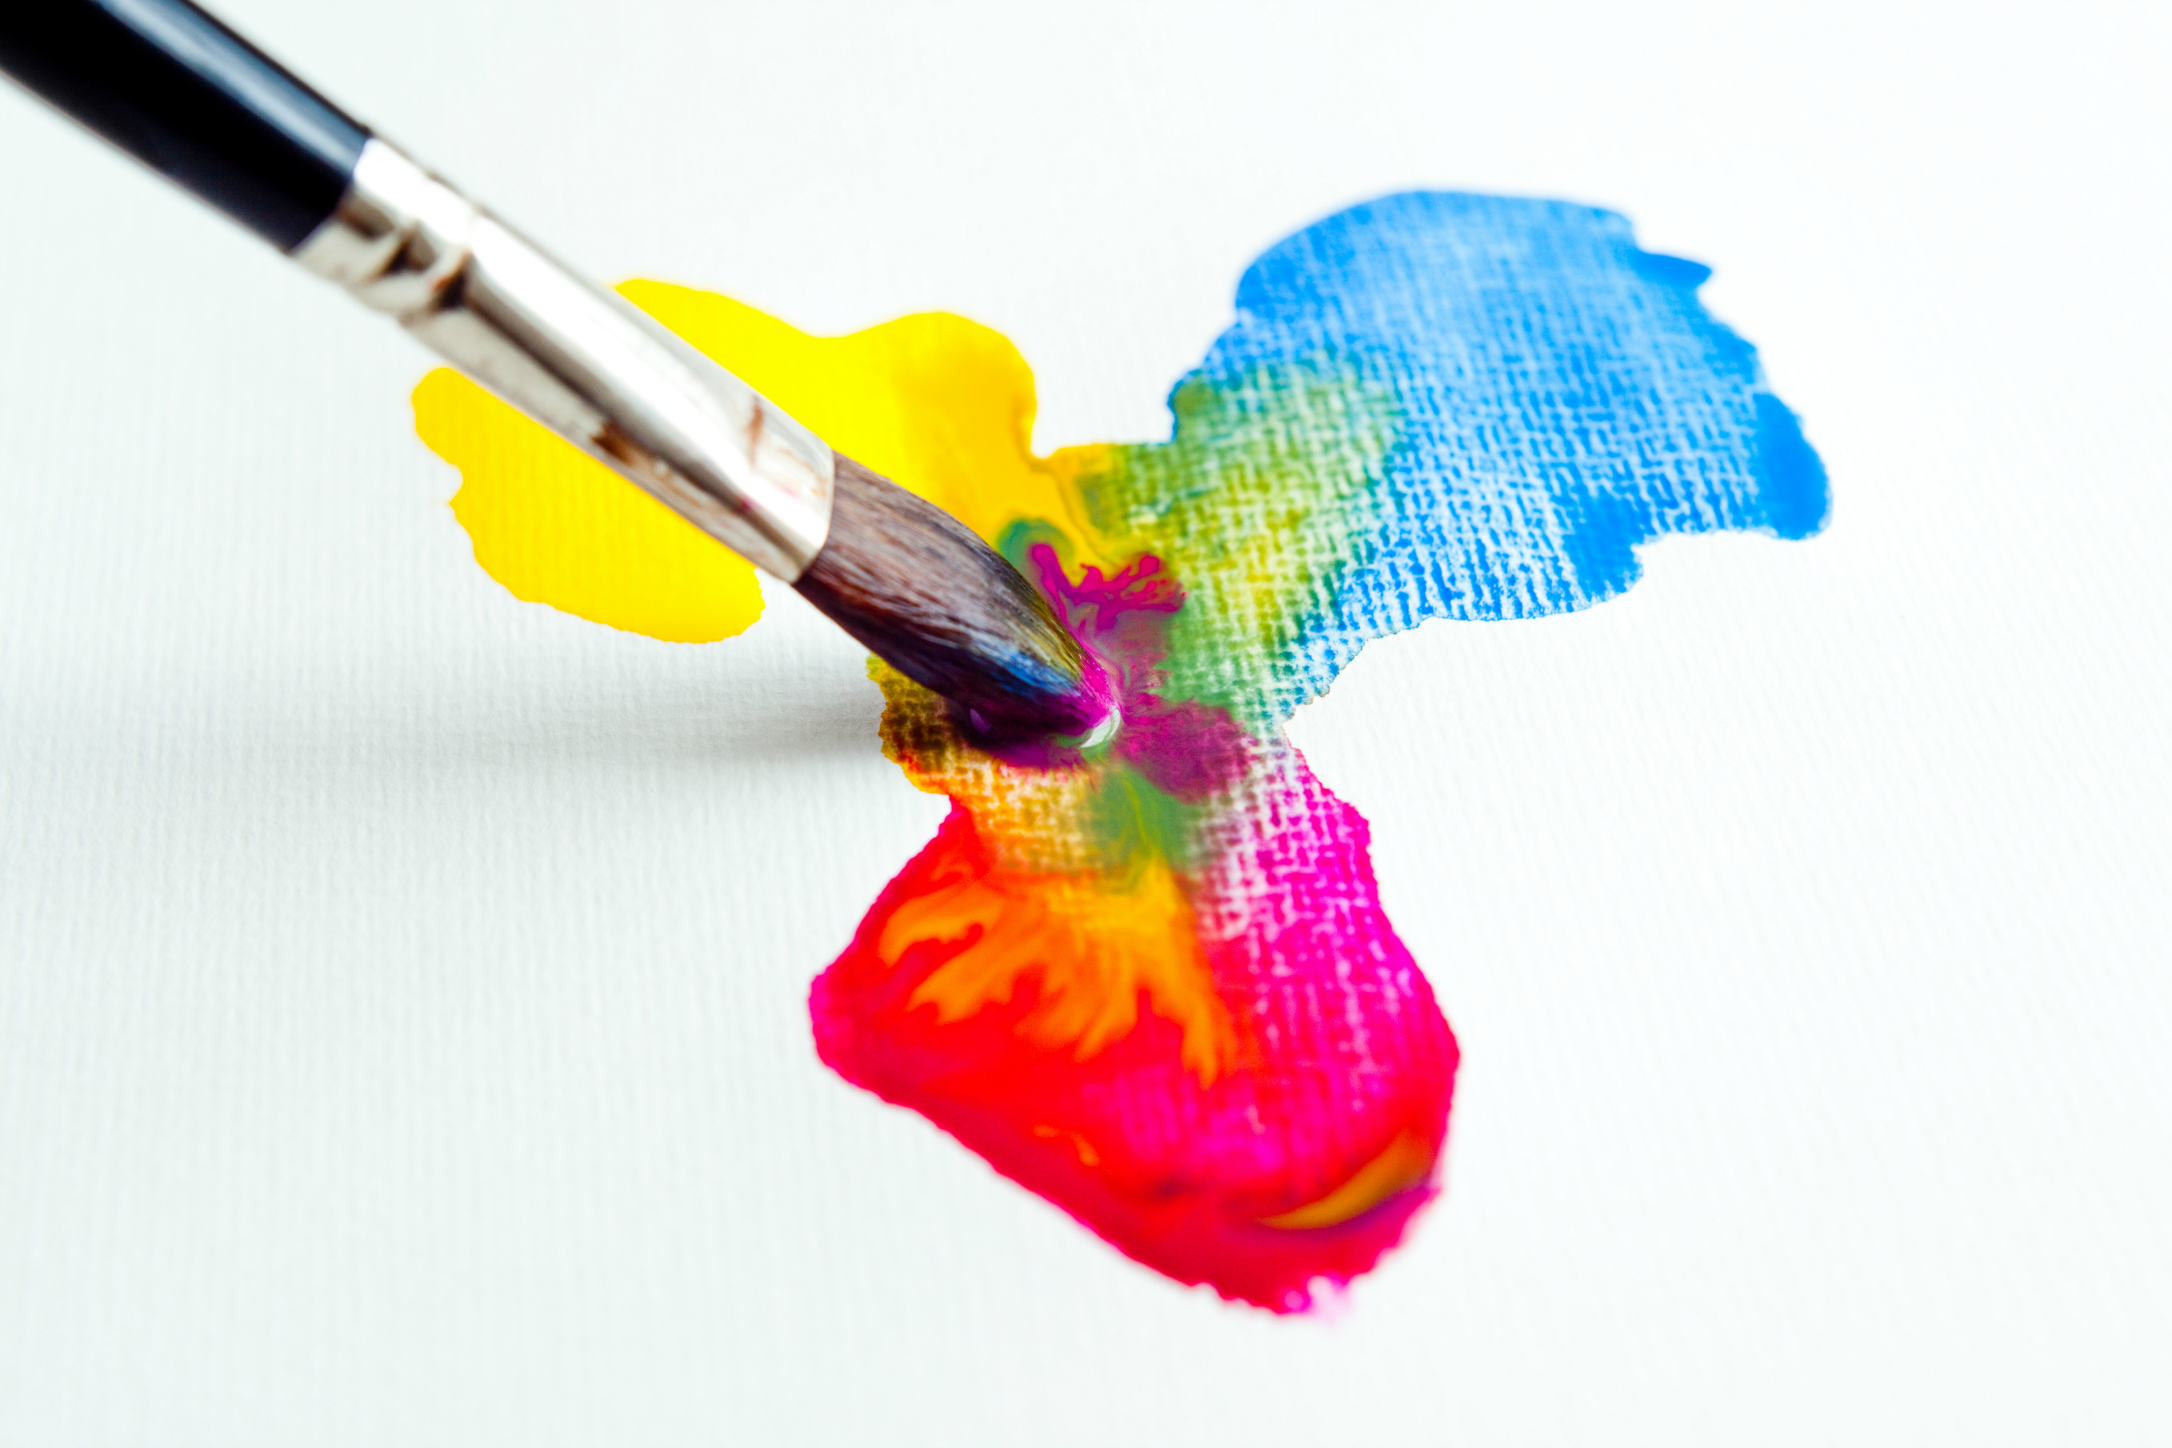 A paintbrush mixing watercolors